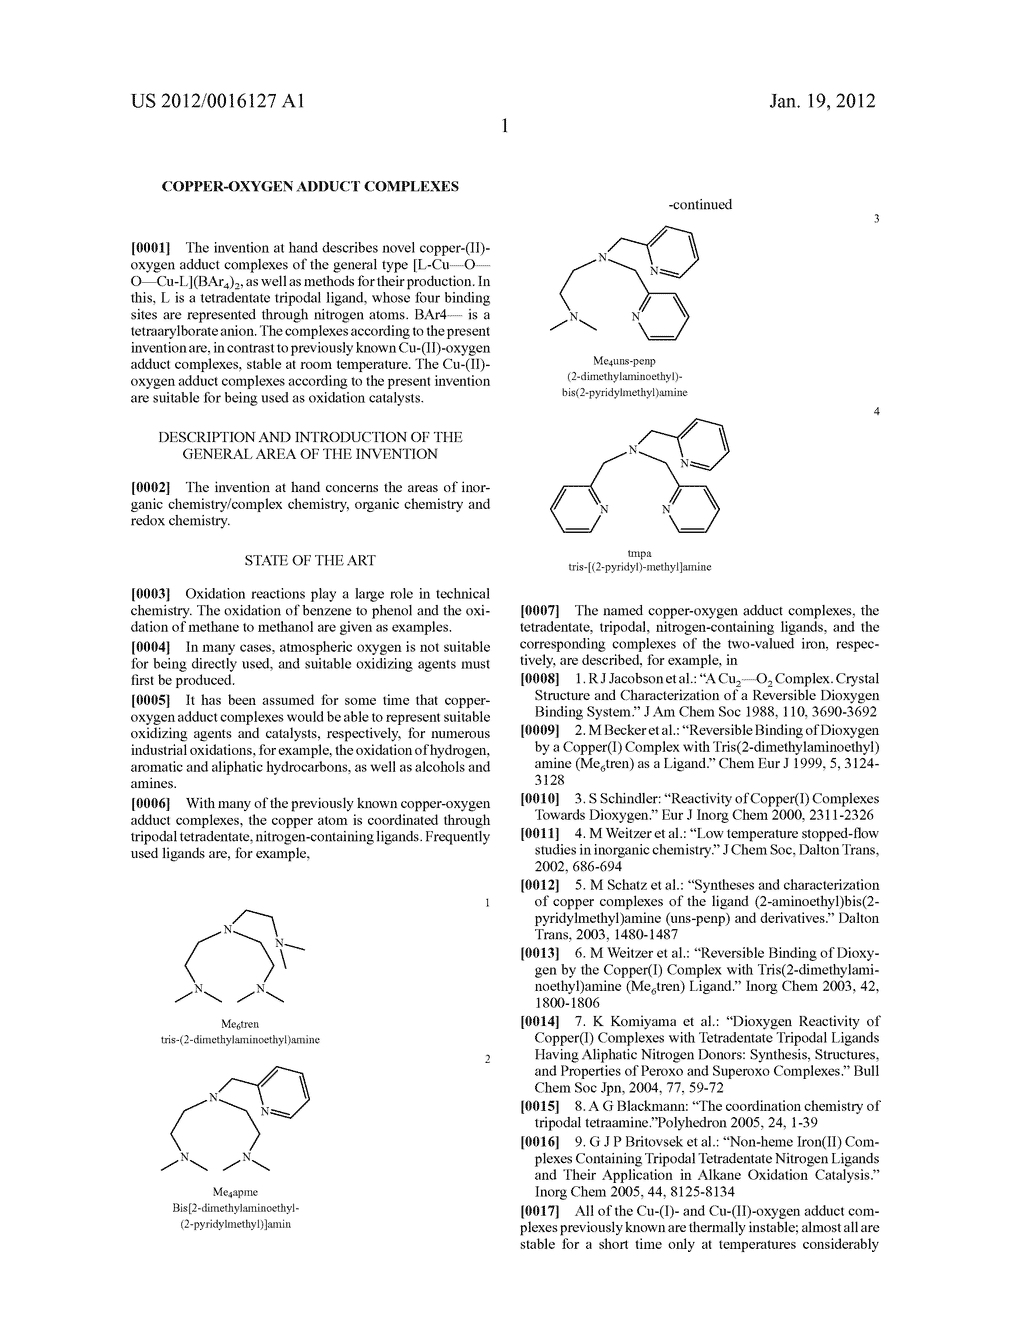 COPPER-OXYGEN ADDUCT COMPLEXES - diagram, schematic, and image 14